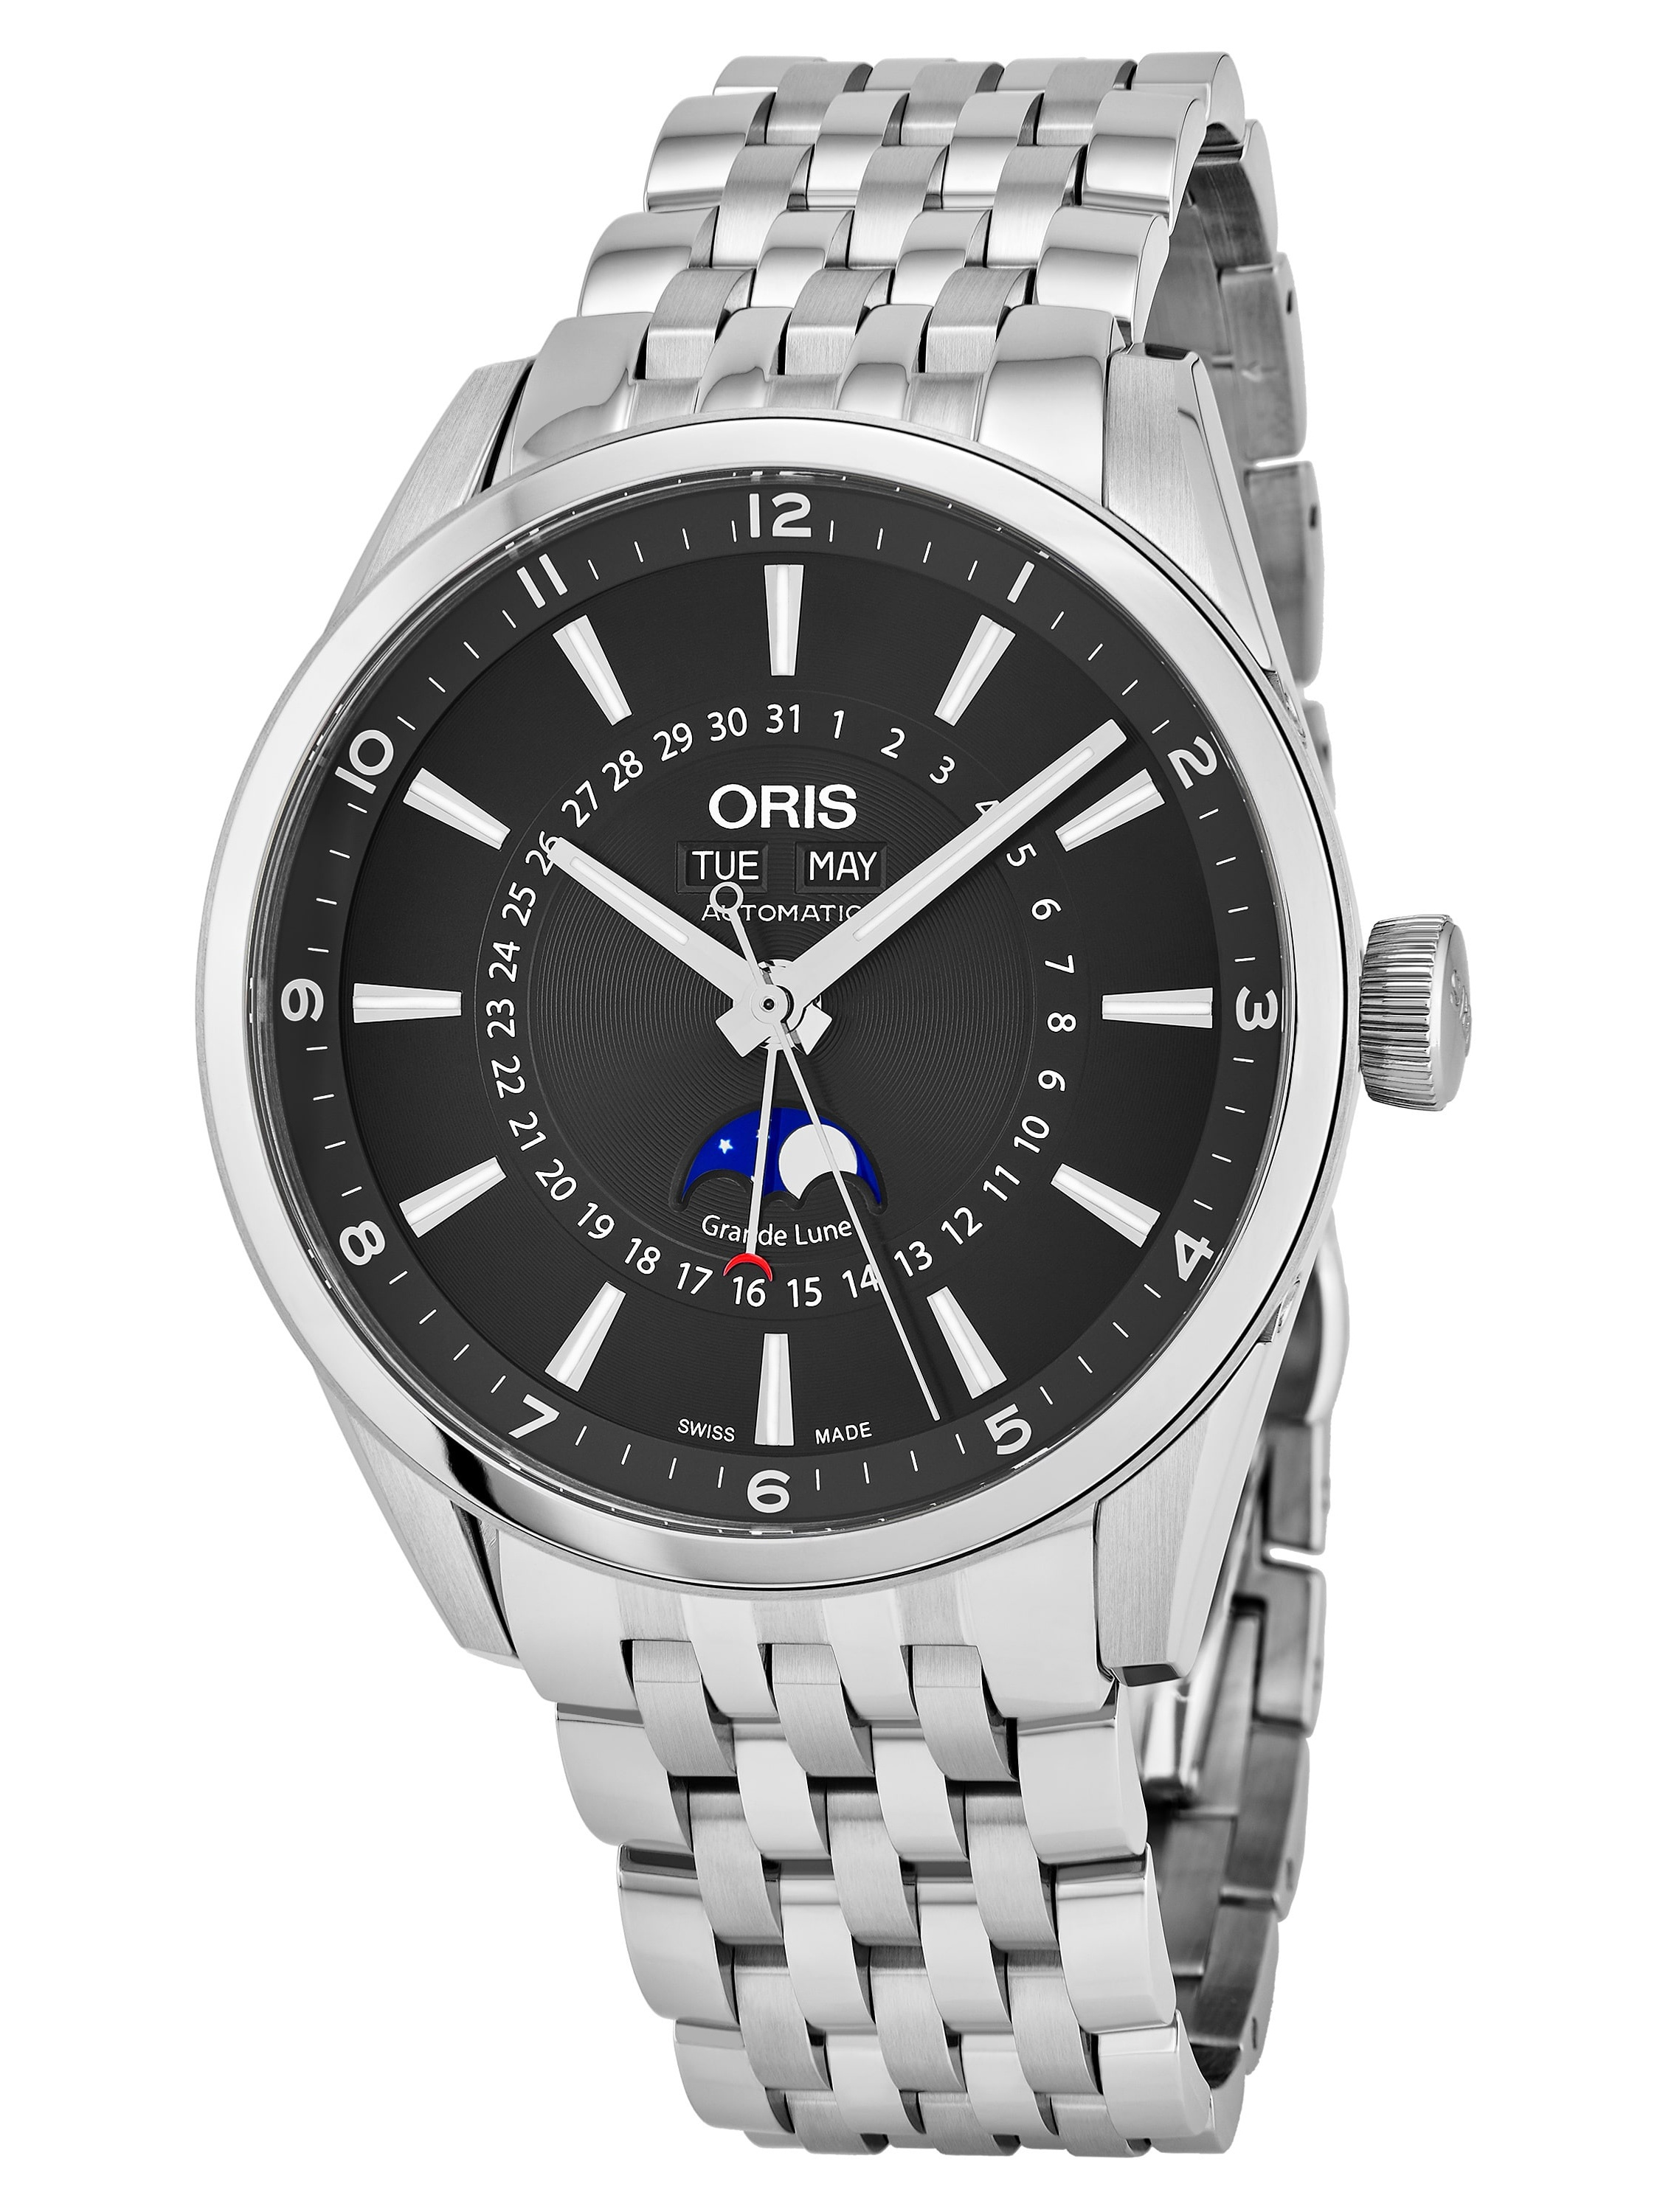 Men's 915 7643 4034 MB 'Artix' Black Dial Stainless Steel Day Date Moon phase Swiss Automatic Watch